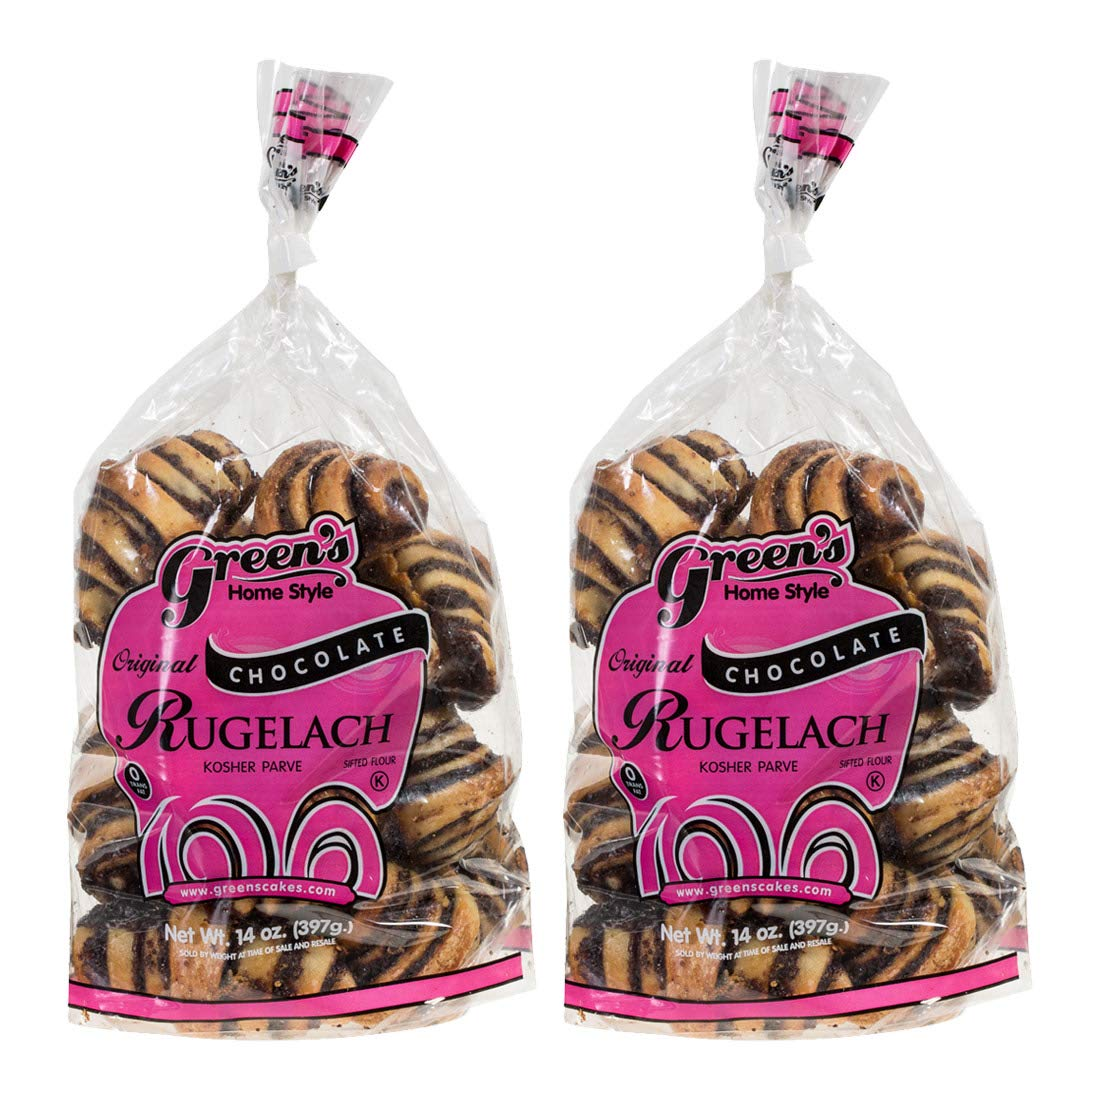 Green's Bakery Chocolate Rugelach Kosher Pastry, 14 oz - 2 Pack